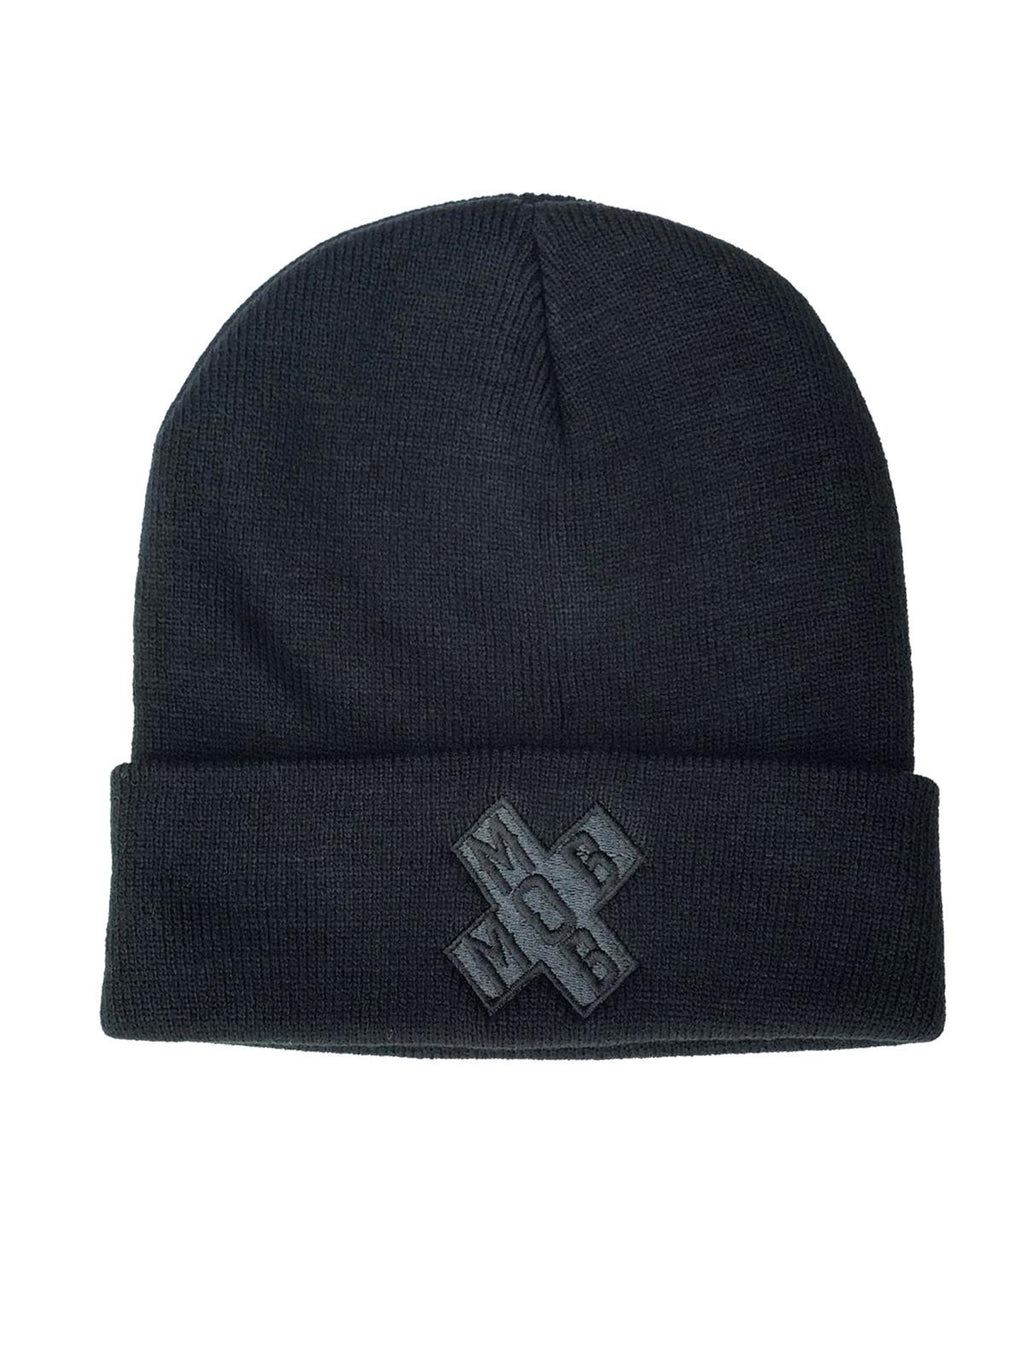 SIGNATURE MOB BEANIE (BLACK ON BLACK)